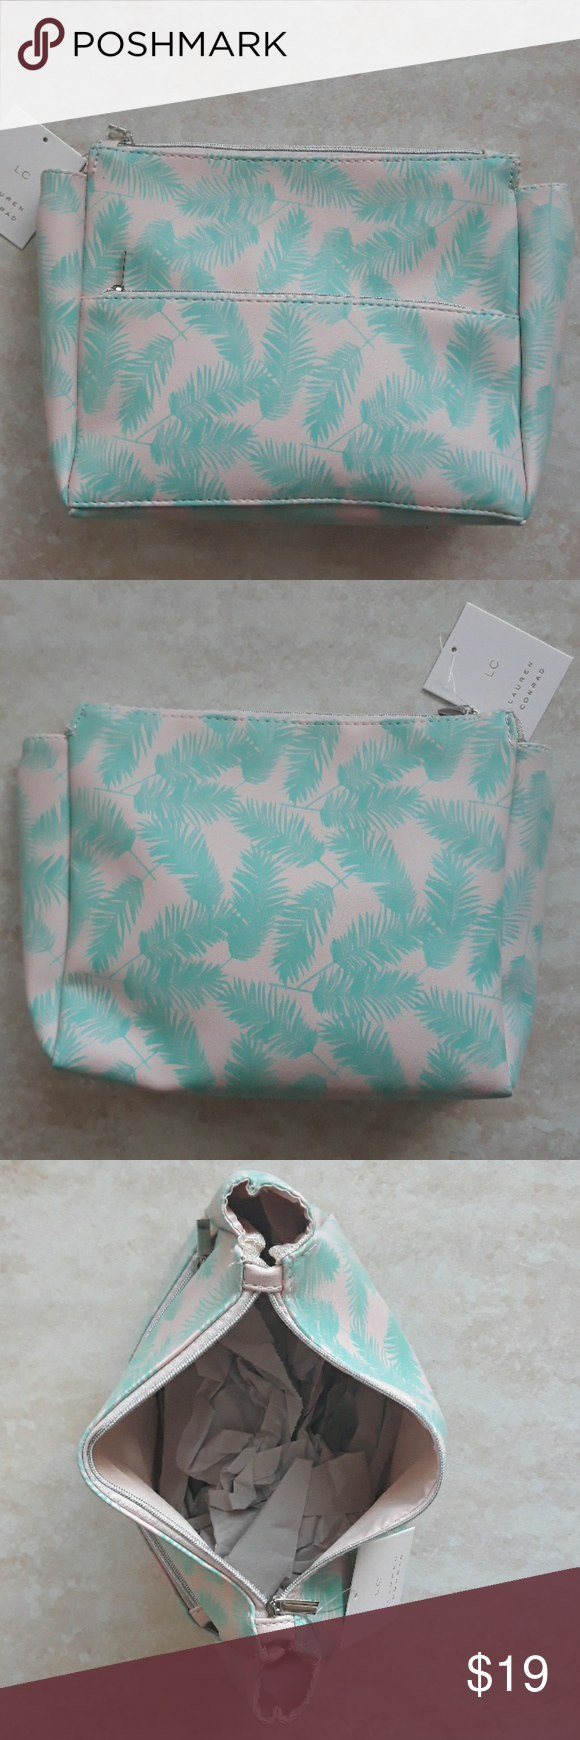 LC Lauren Conrad cosmetic and make up bag Lc lauren